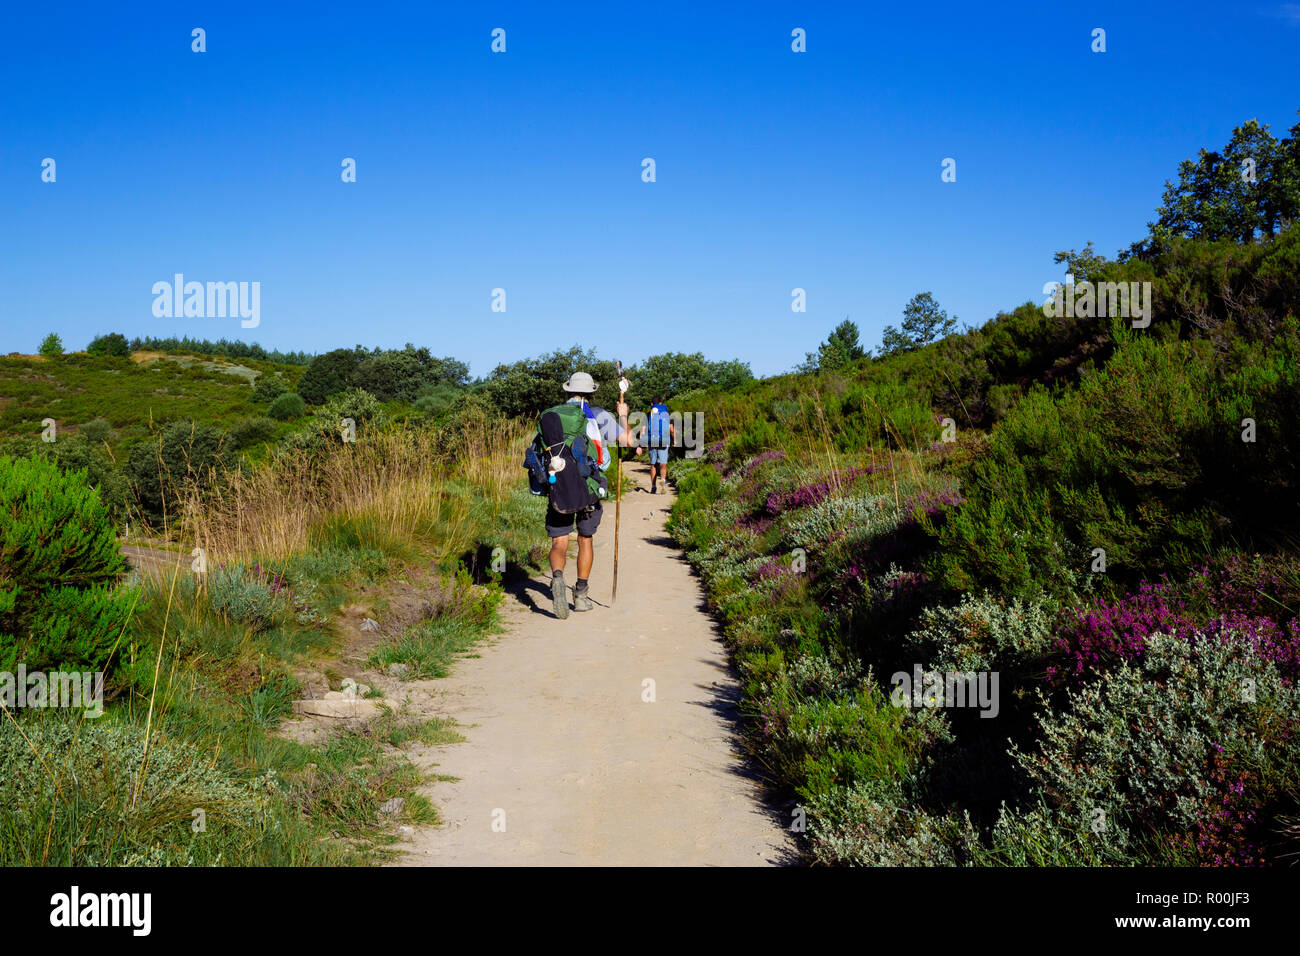 Camino de Santiago (Spain) - Pilgrims walking along the way of St.James, in the Bierzo green landscape Stock Photo